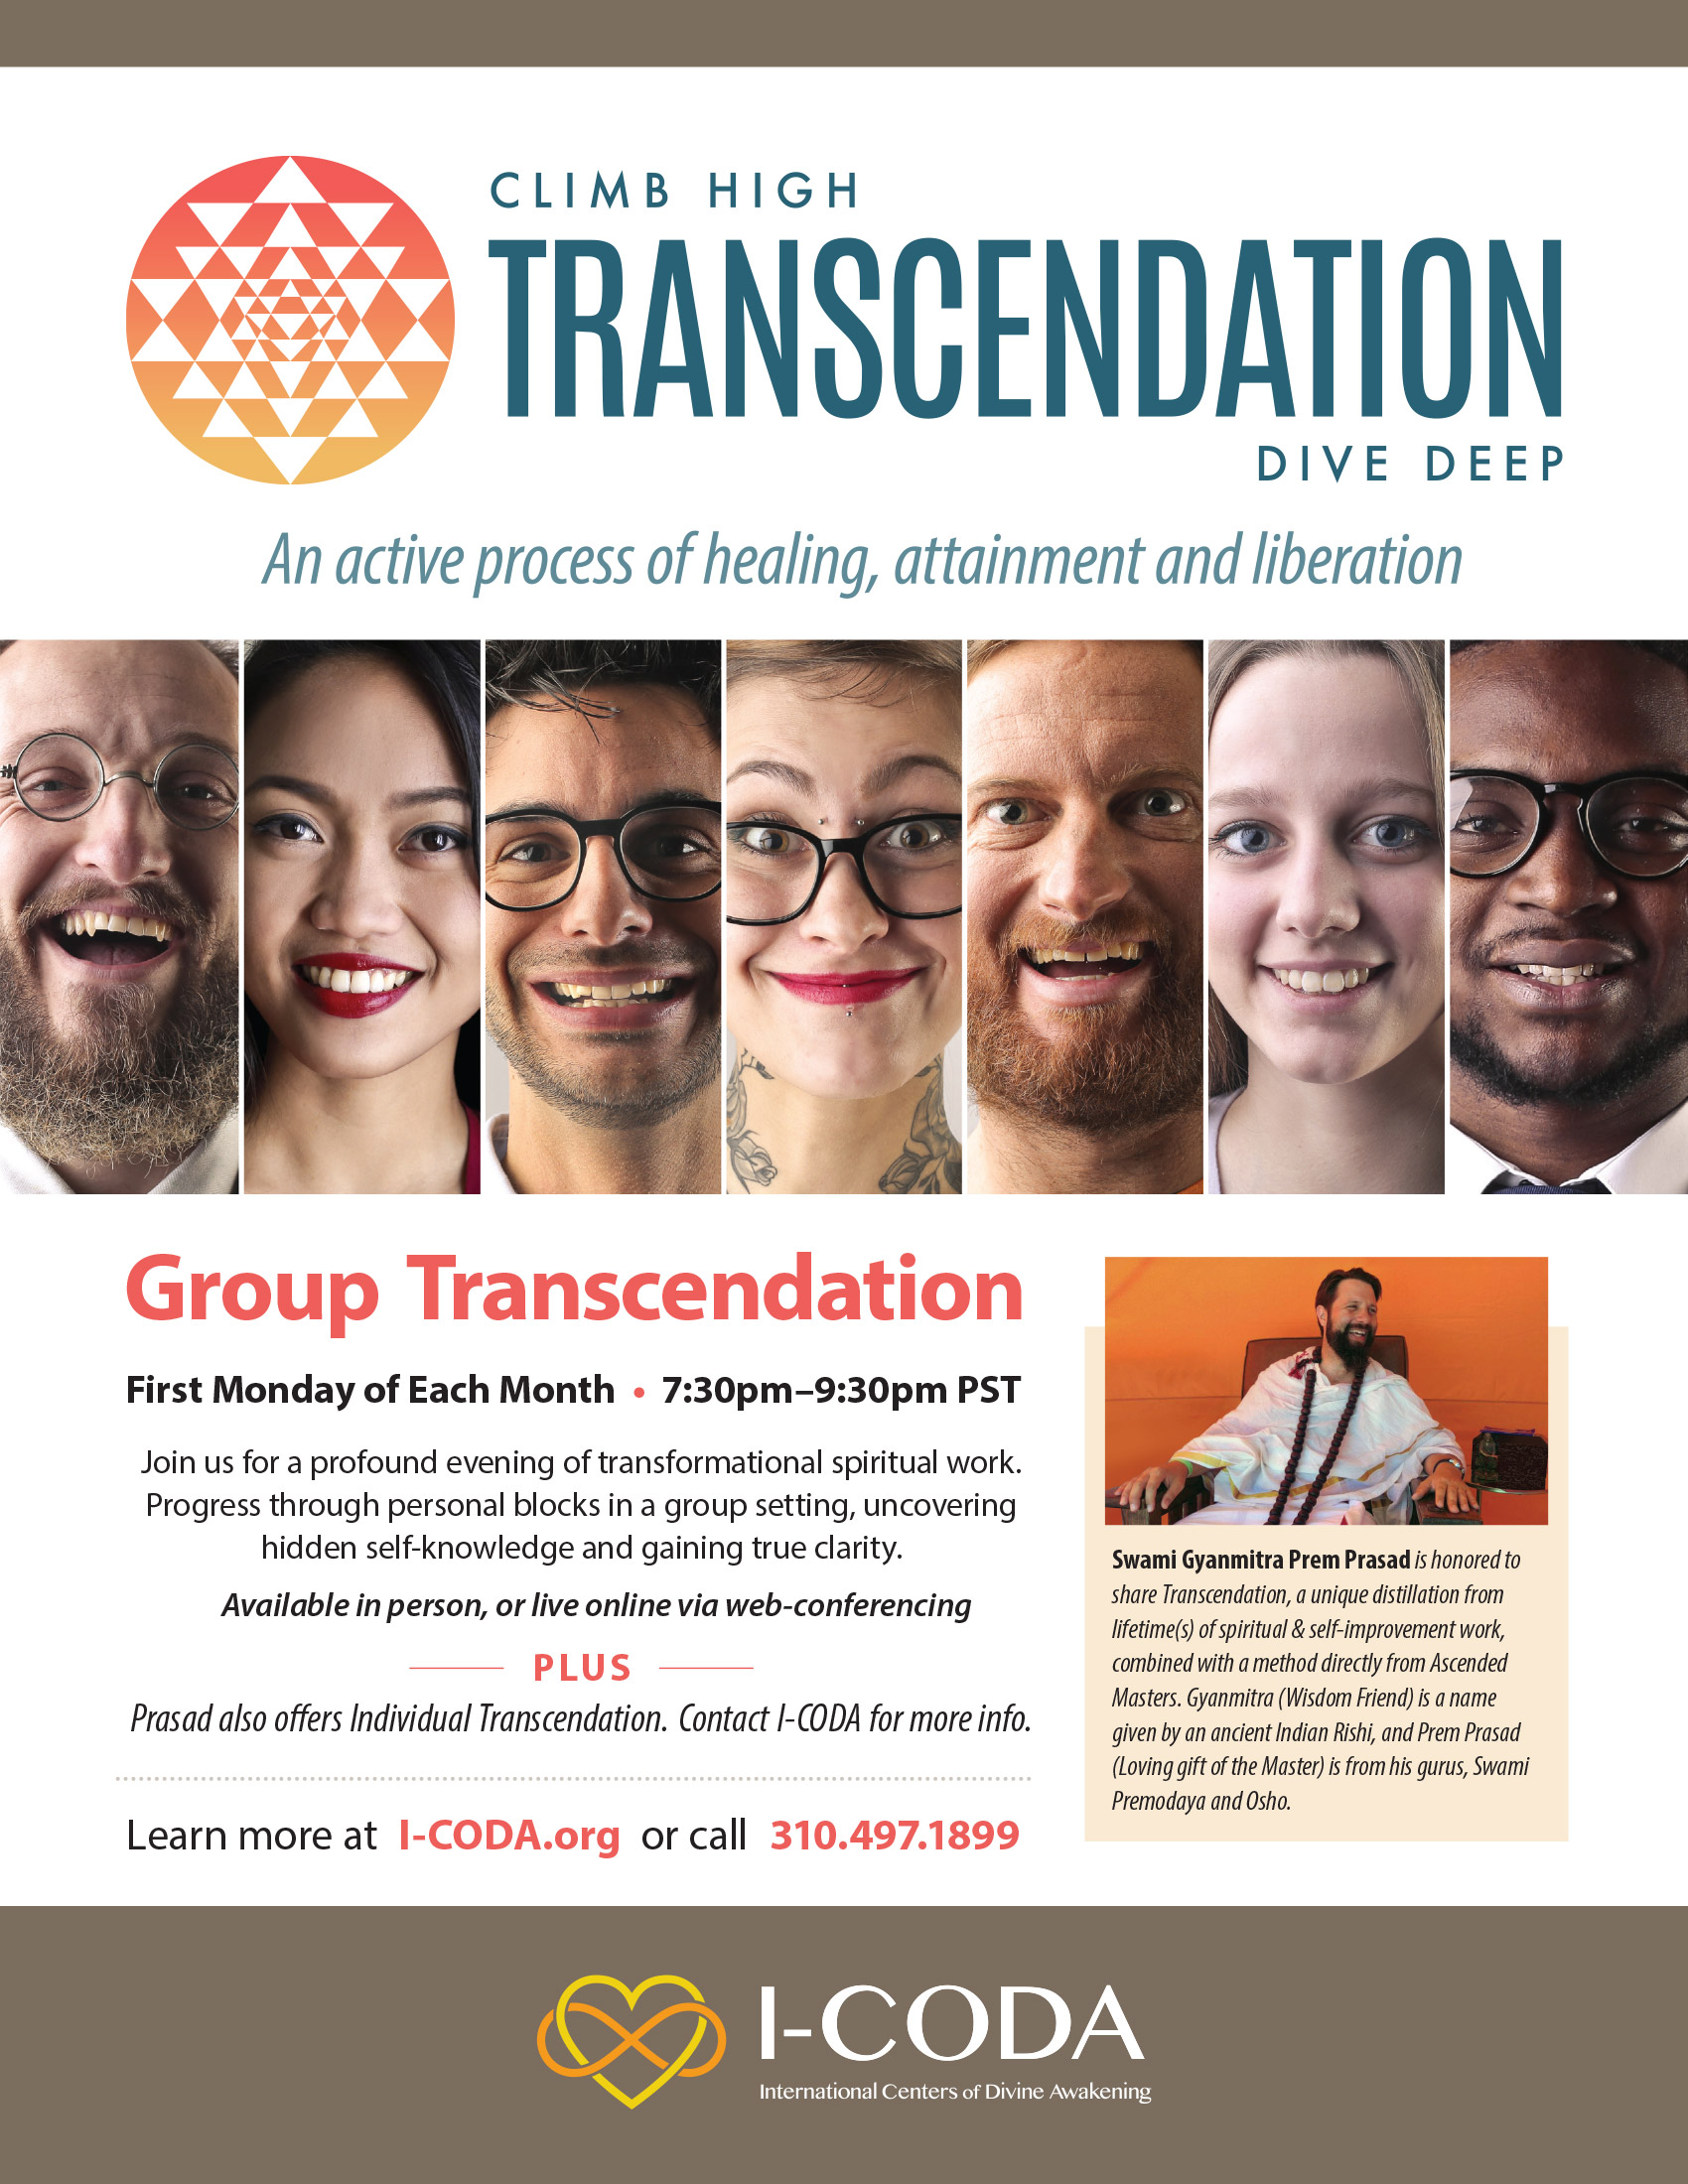 Transcendation-Flyer-011718.jpg